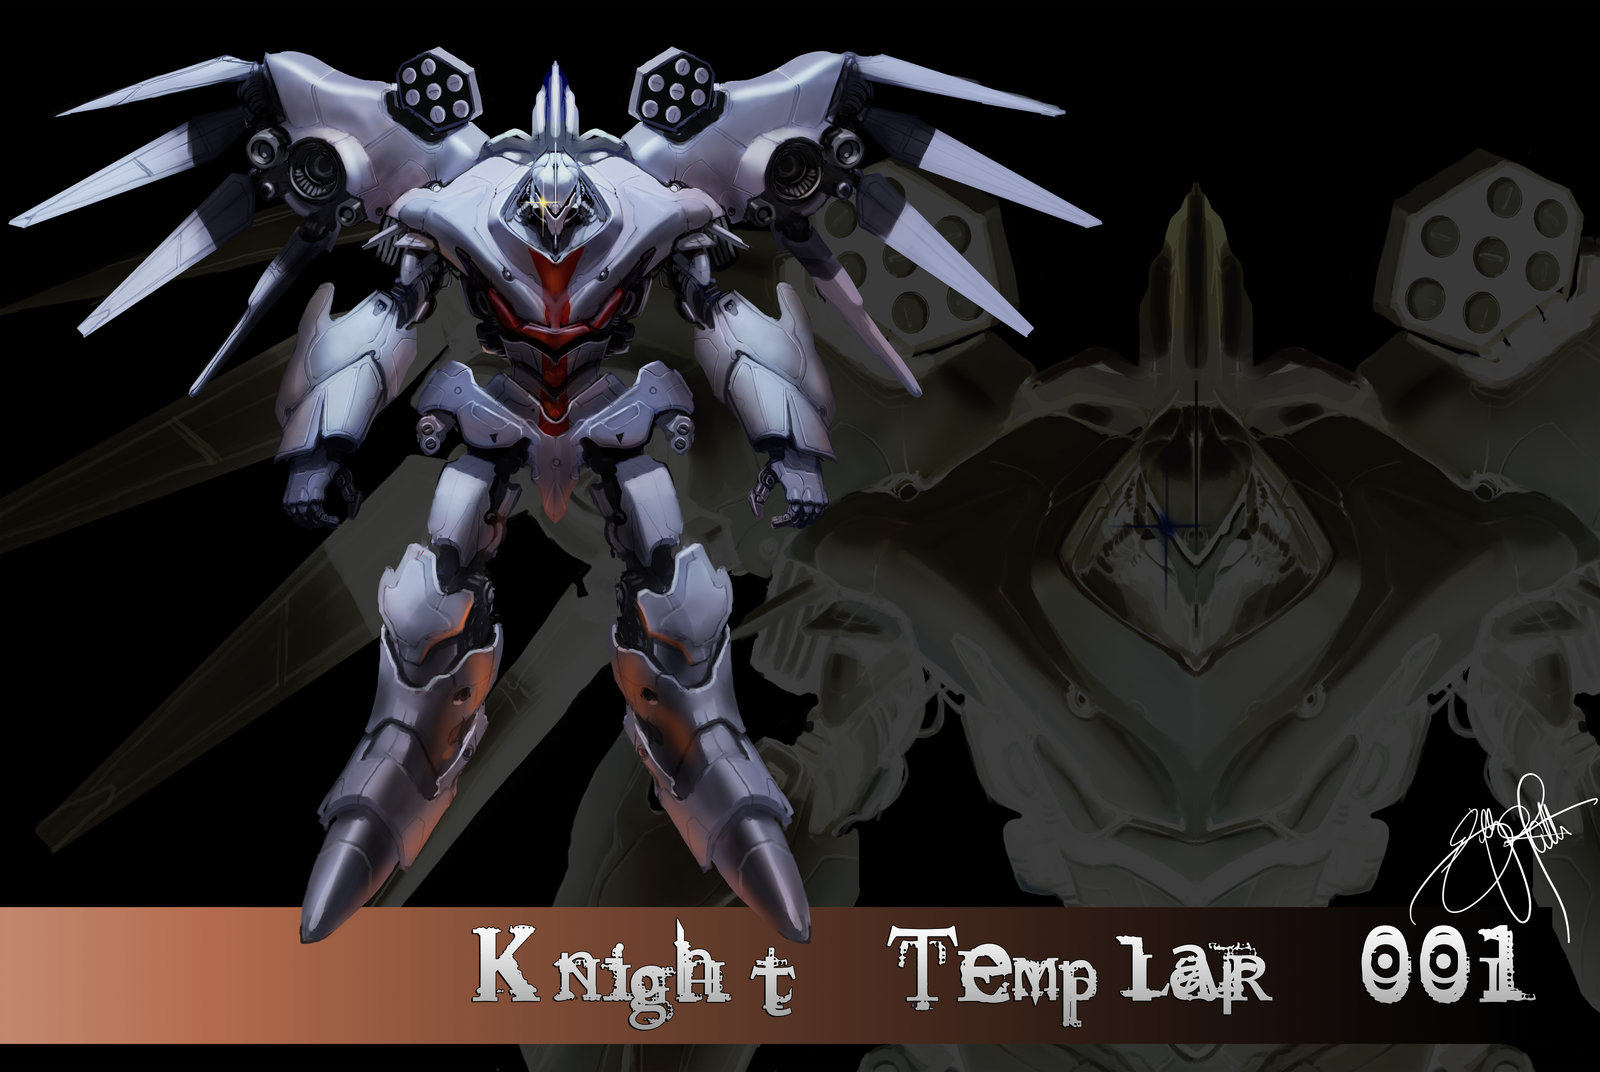 Knight Templar by billydallaspatton